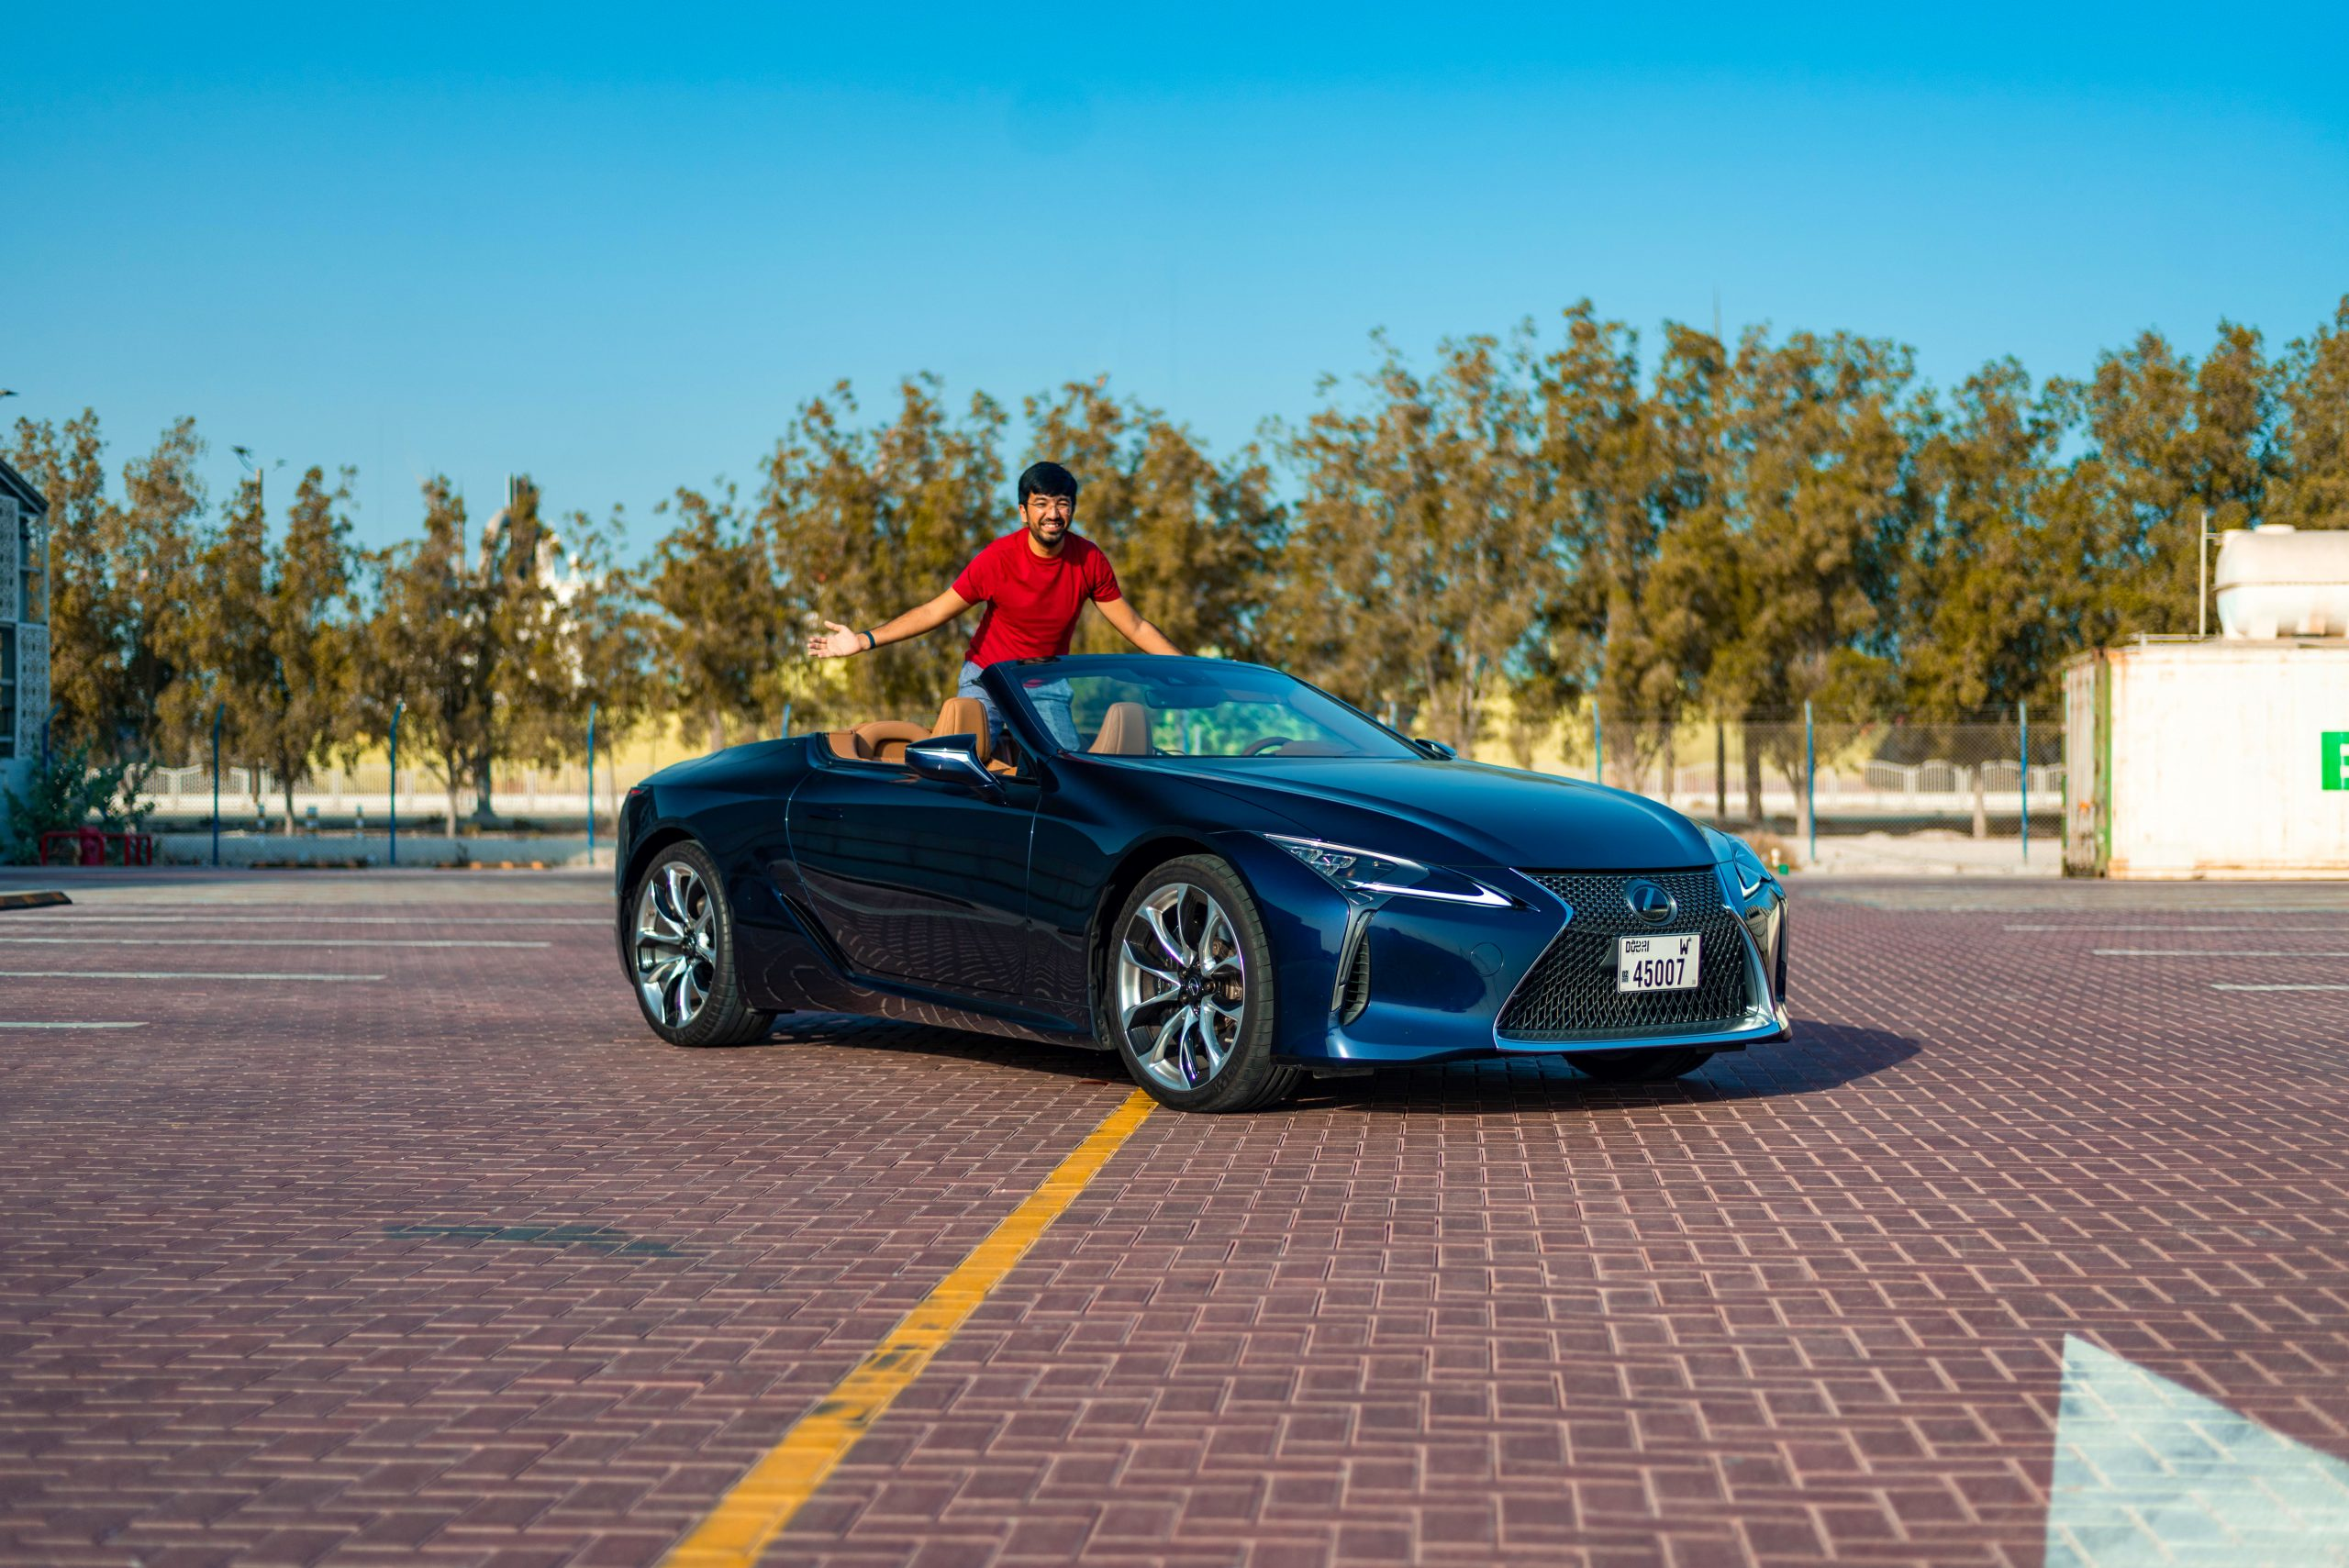 2021 Lexus LC 500 Convertible Review | Perfect GT Car Worth Every Penny